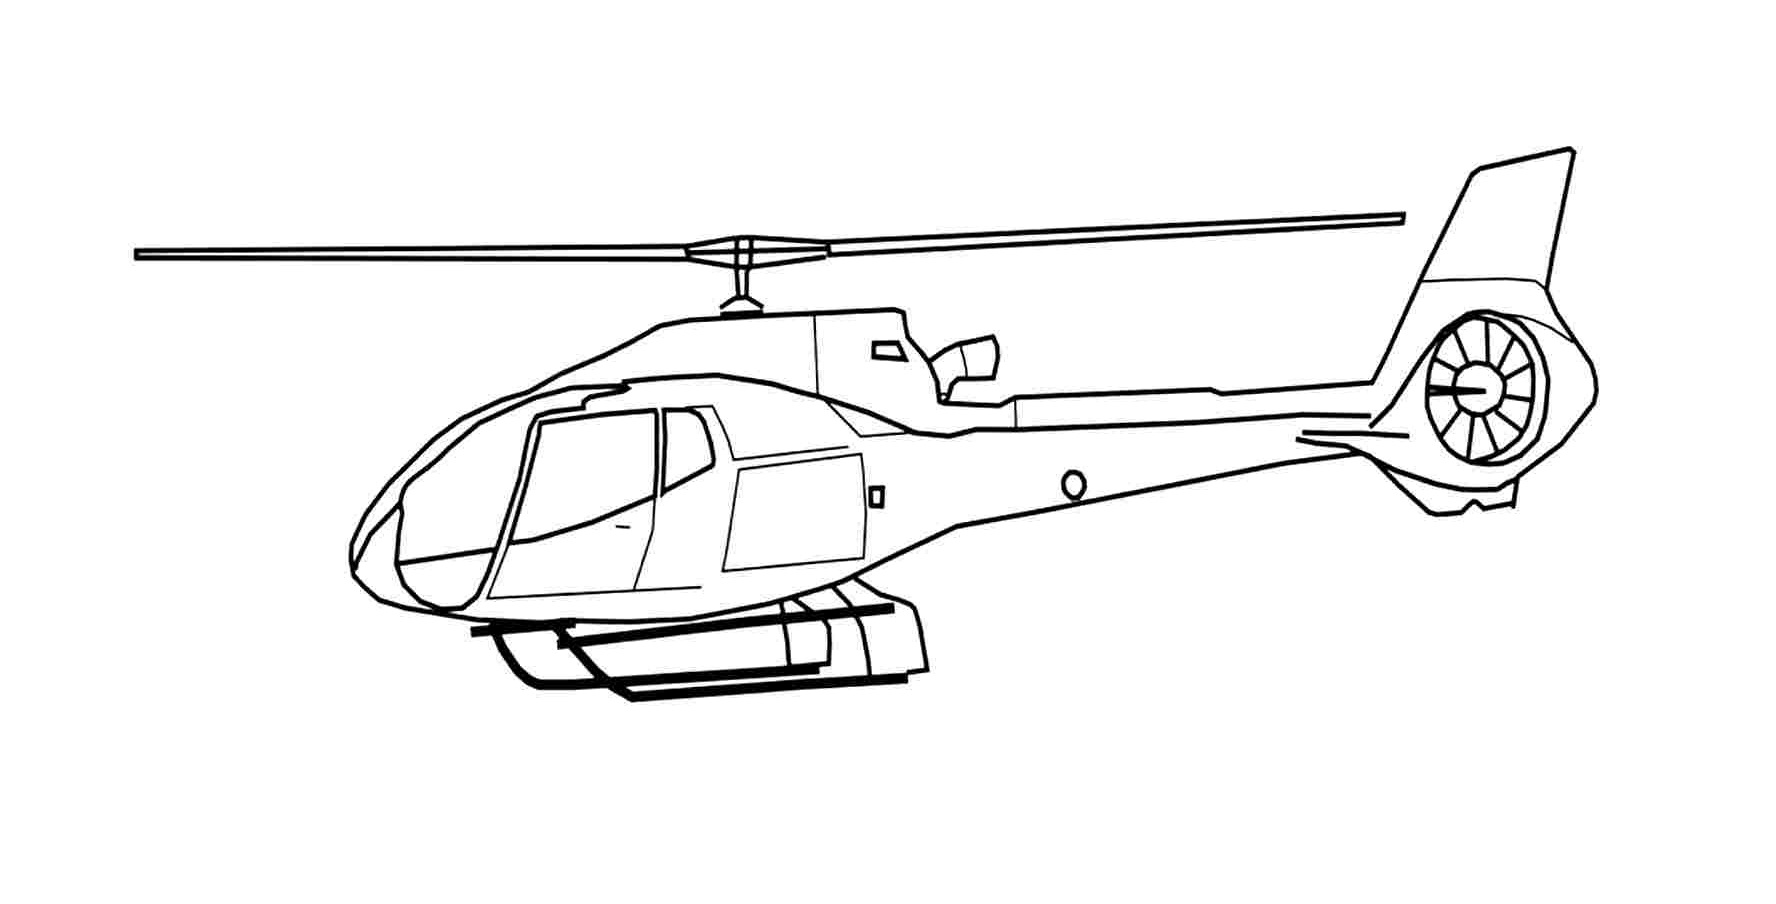 coloring pages helicopter - photo#15